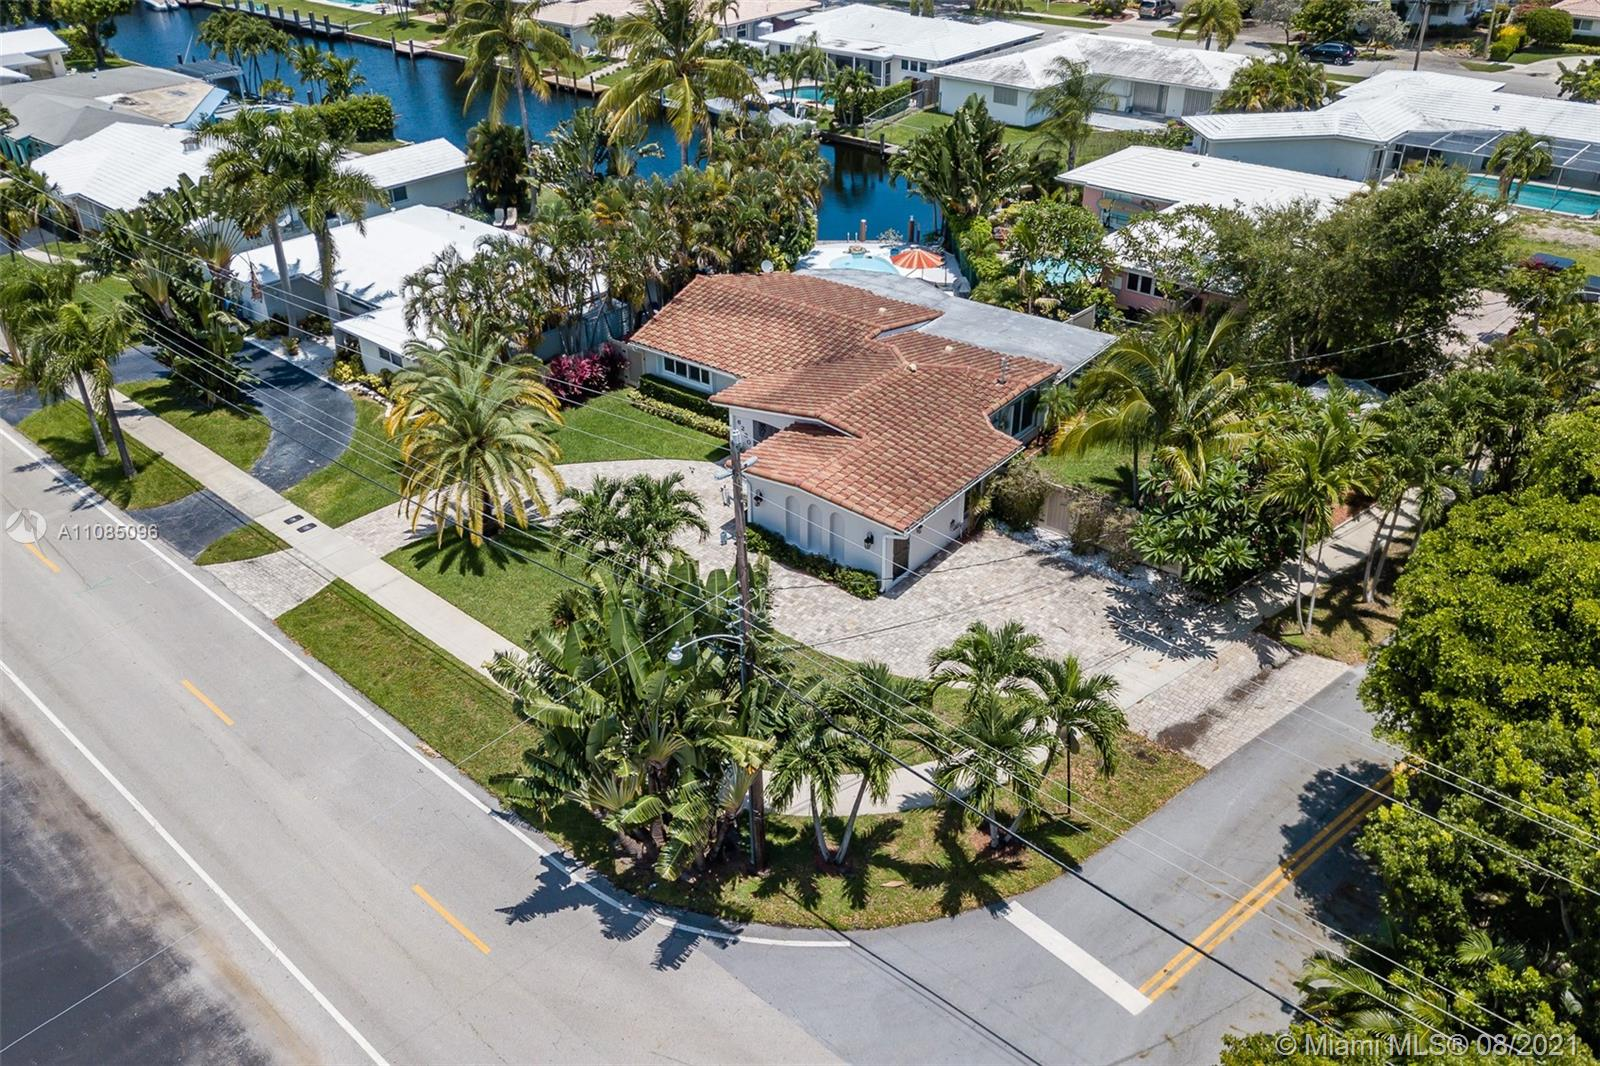 Imperial Point - 6230 NE 19th Ave, Fort Lauderdale, FL 33308